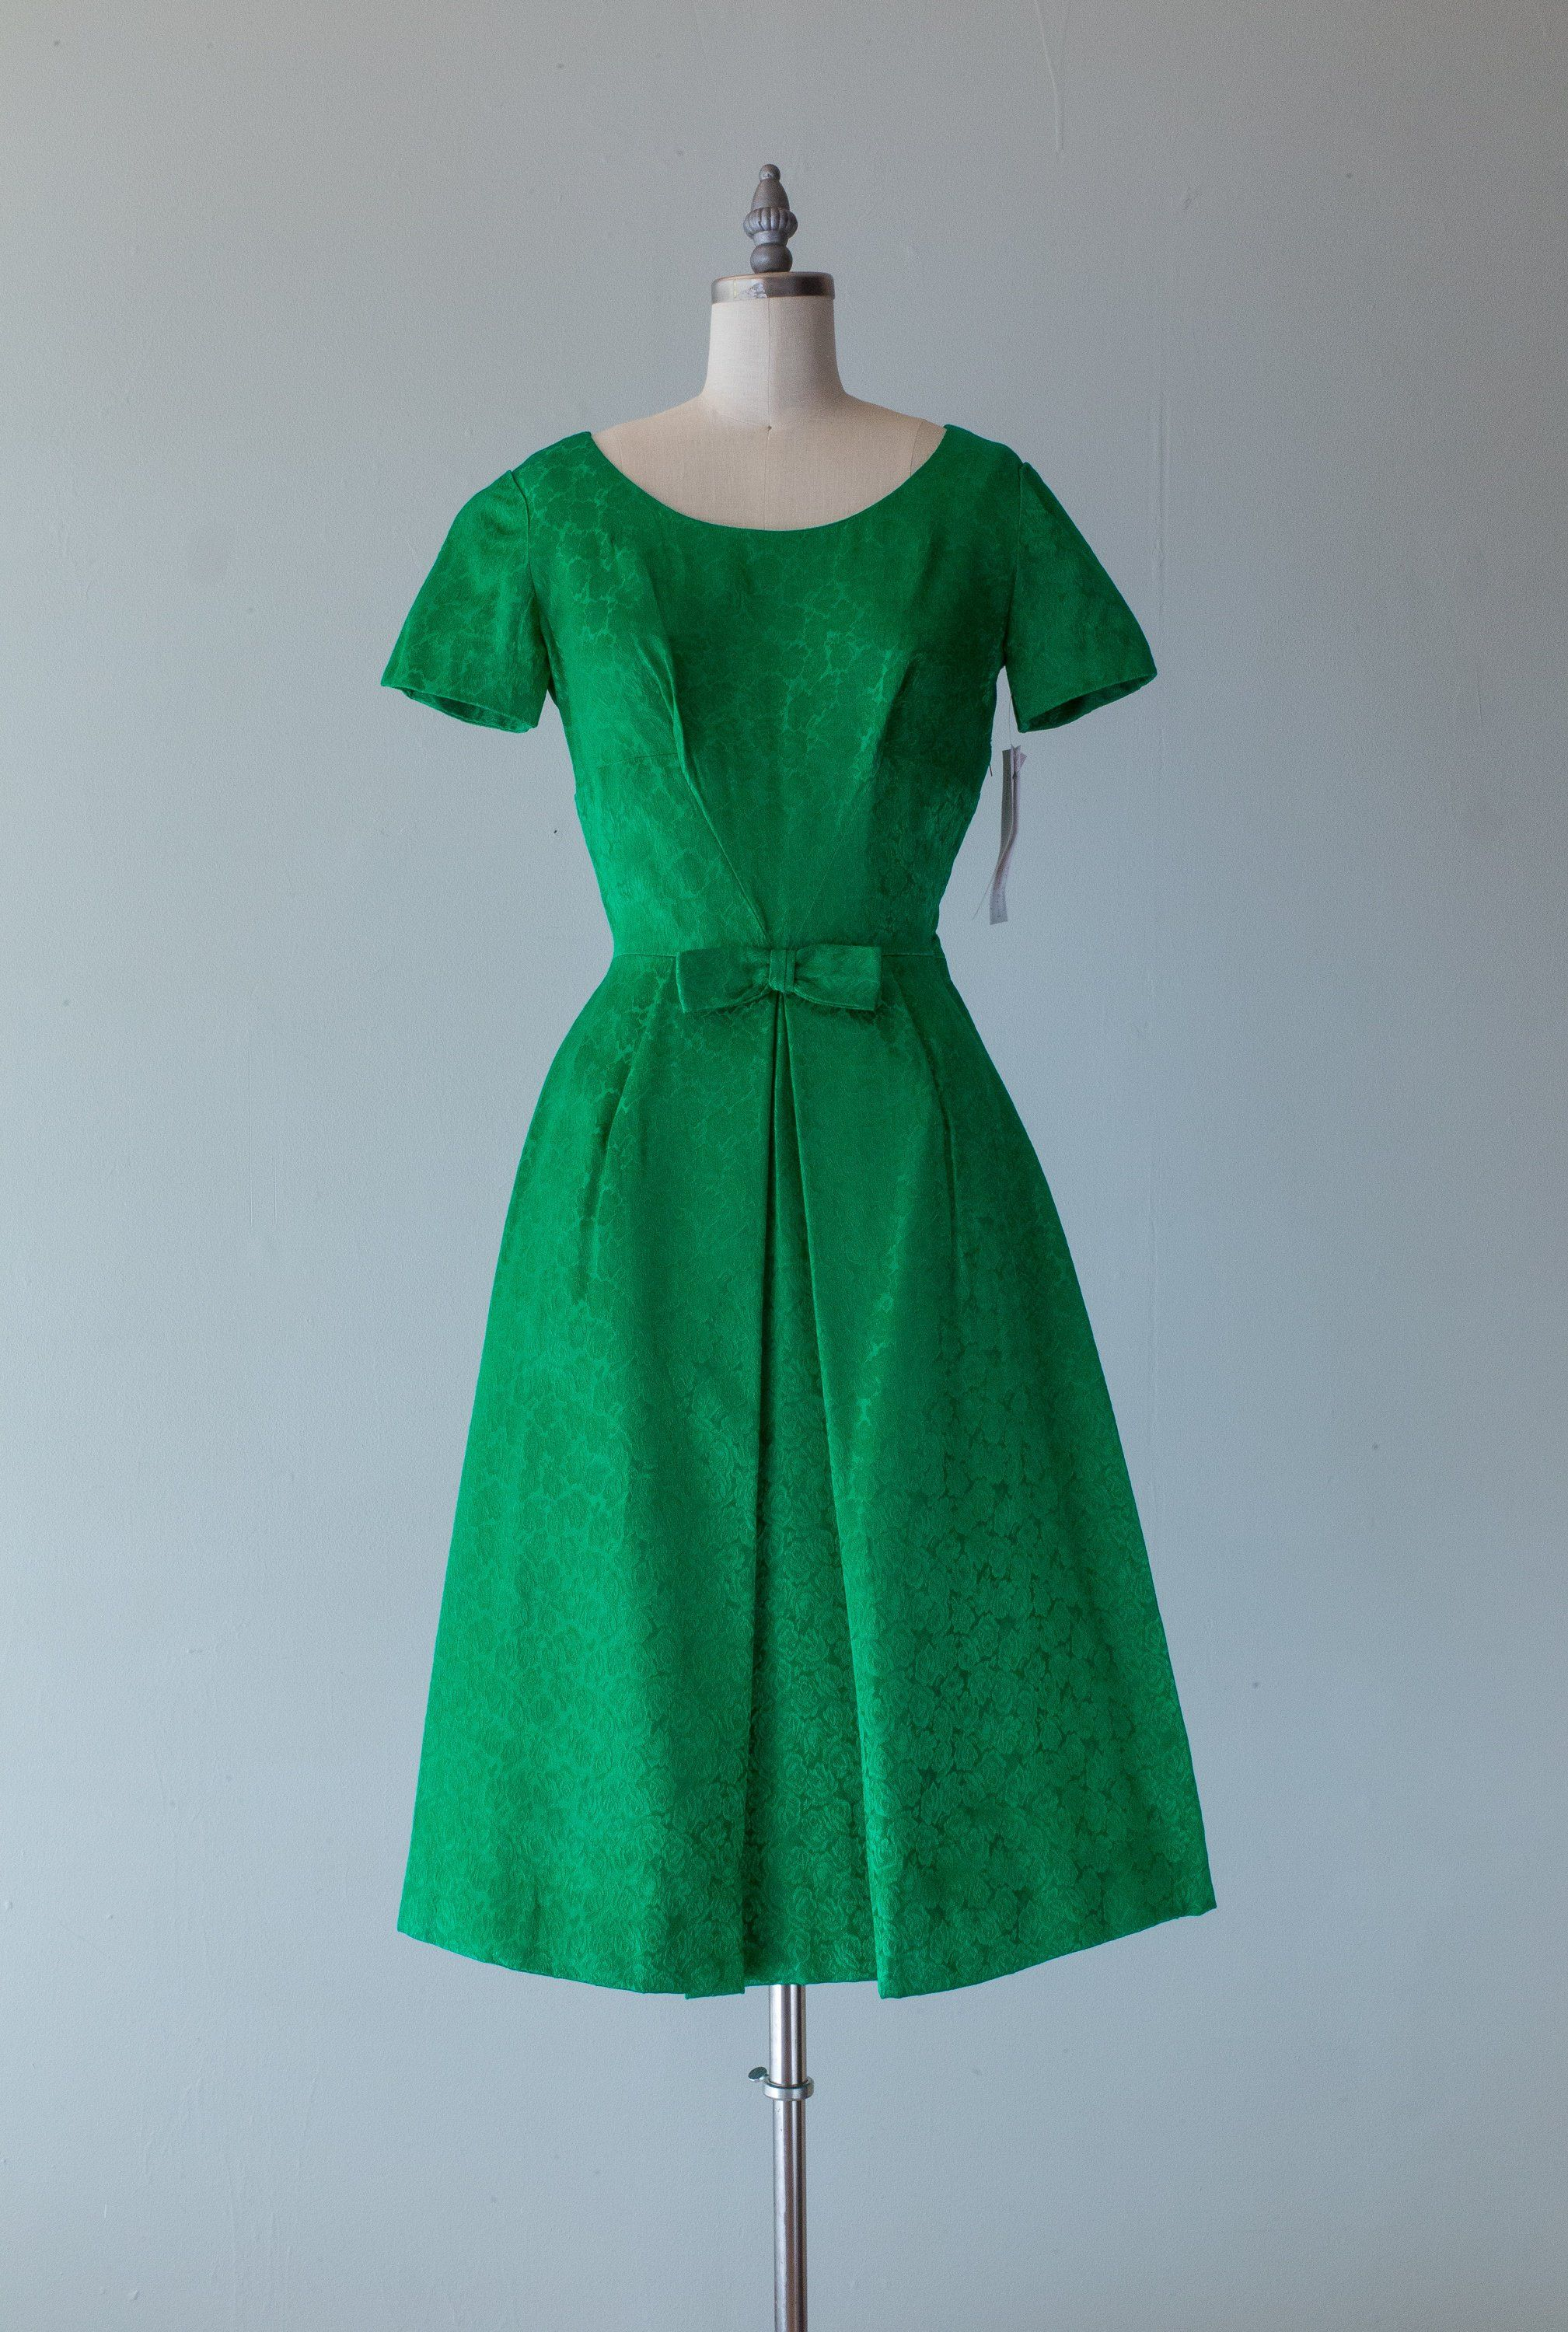 Vintage 1960s Dress 60s Emerald Green Holiday Party Dress In Etsy Vintage Dresses 1960s Vintage Dresses Vintage Clothing Boutique [ 3000 x 2017 Pixel ]